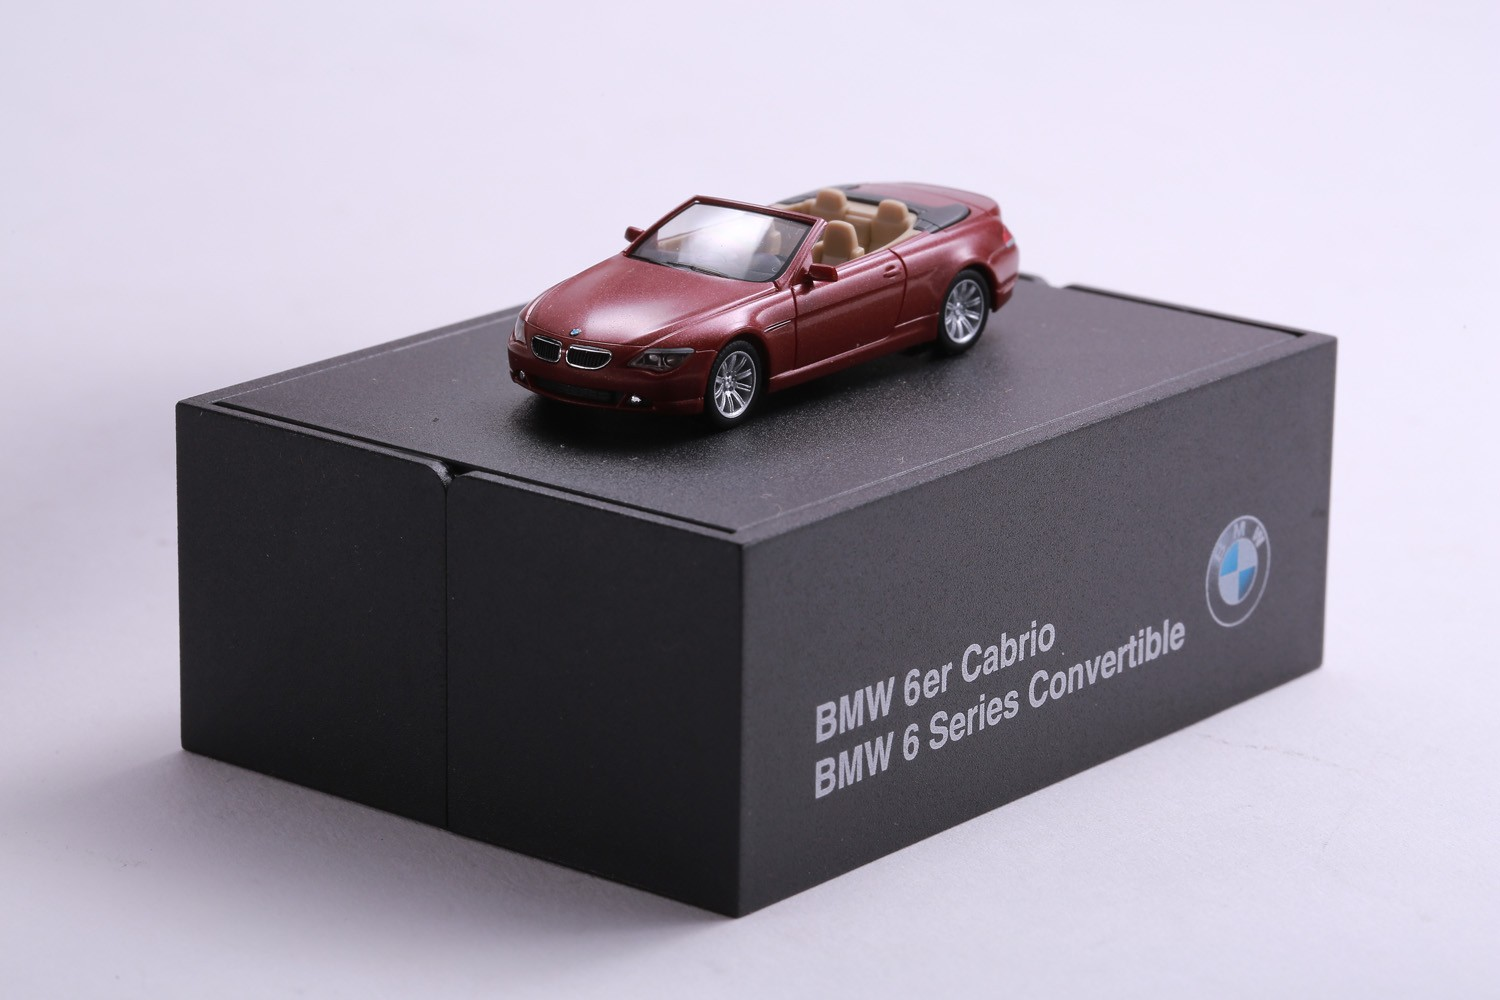 BMW 6ER CABRIO (BMW 6 SERIES CONVERTIBLE) – 80410153432 – RED